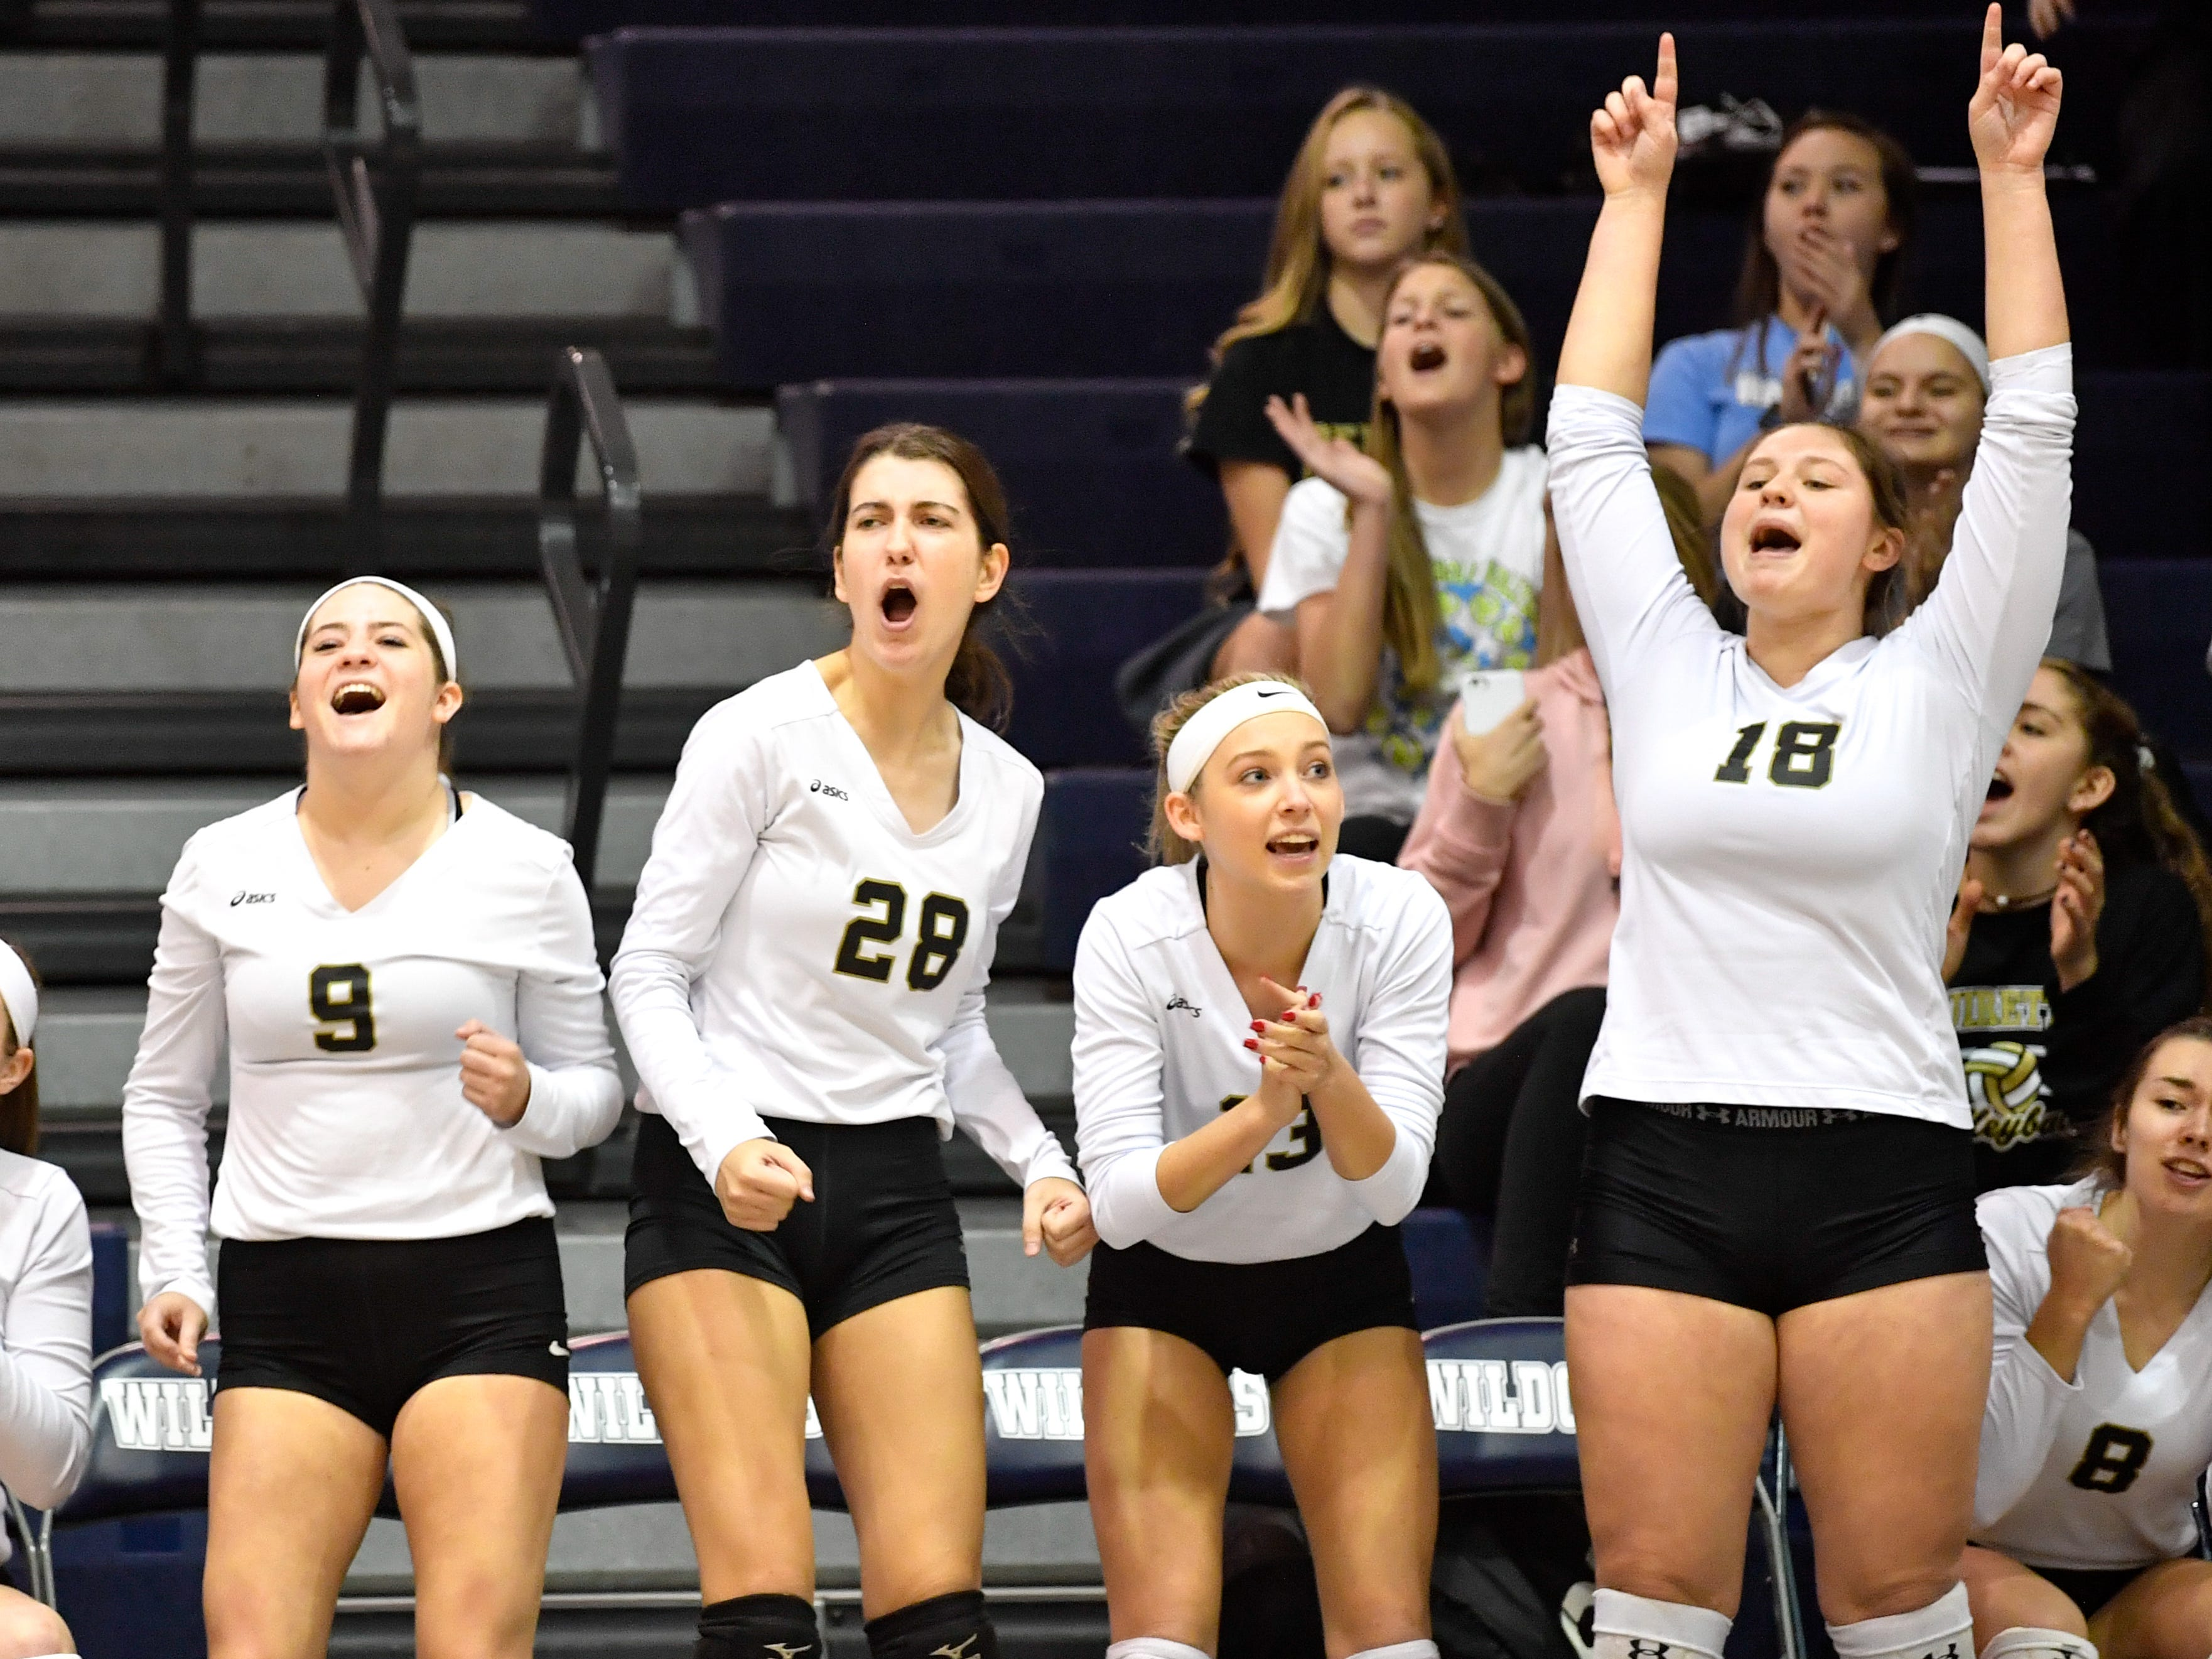 Delone Catholic volleyball survives five-set scare, advances to state quarterfinals